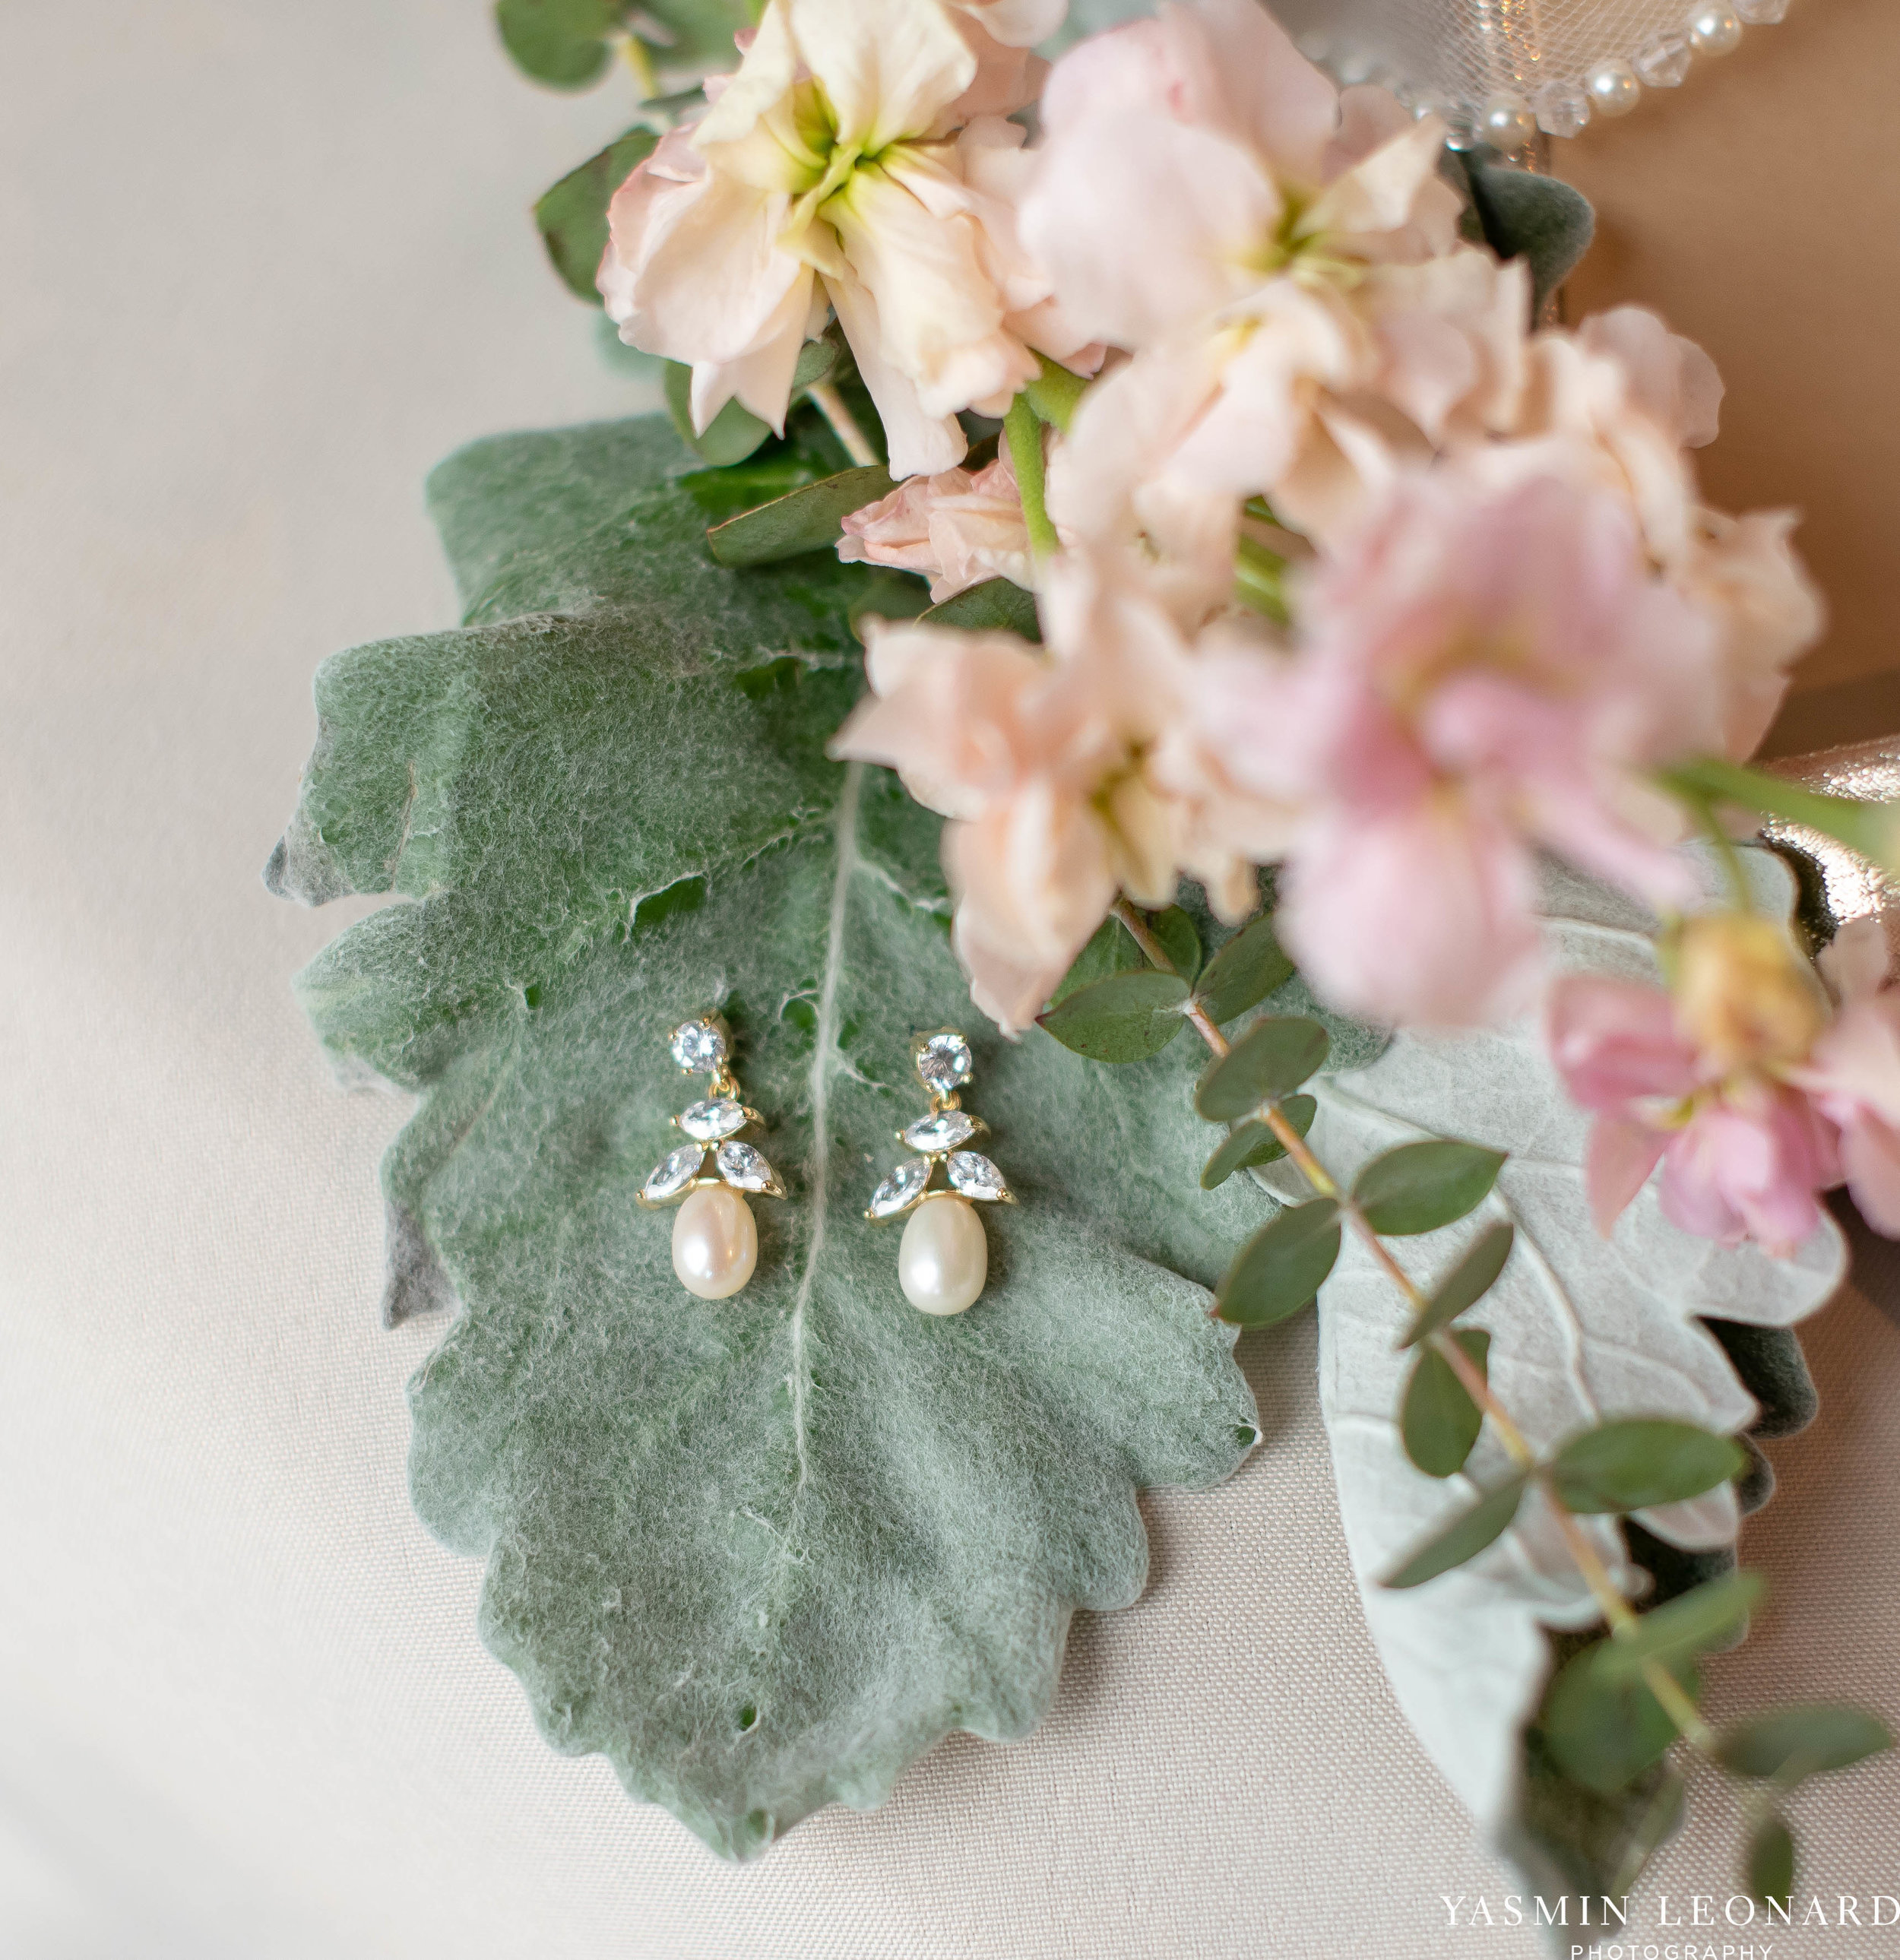 The Lofts at Union Square - Unions - High Point Weddings - NC Weddings - NC Wedding Photographer - Yasmin Leonard Photography - Just Priceless - Green Pink and Gold Wedding - Elegant Wedding-5.jpg